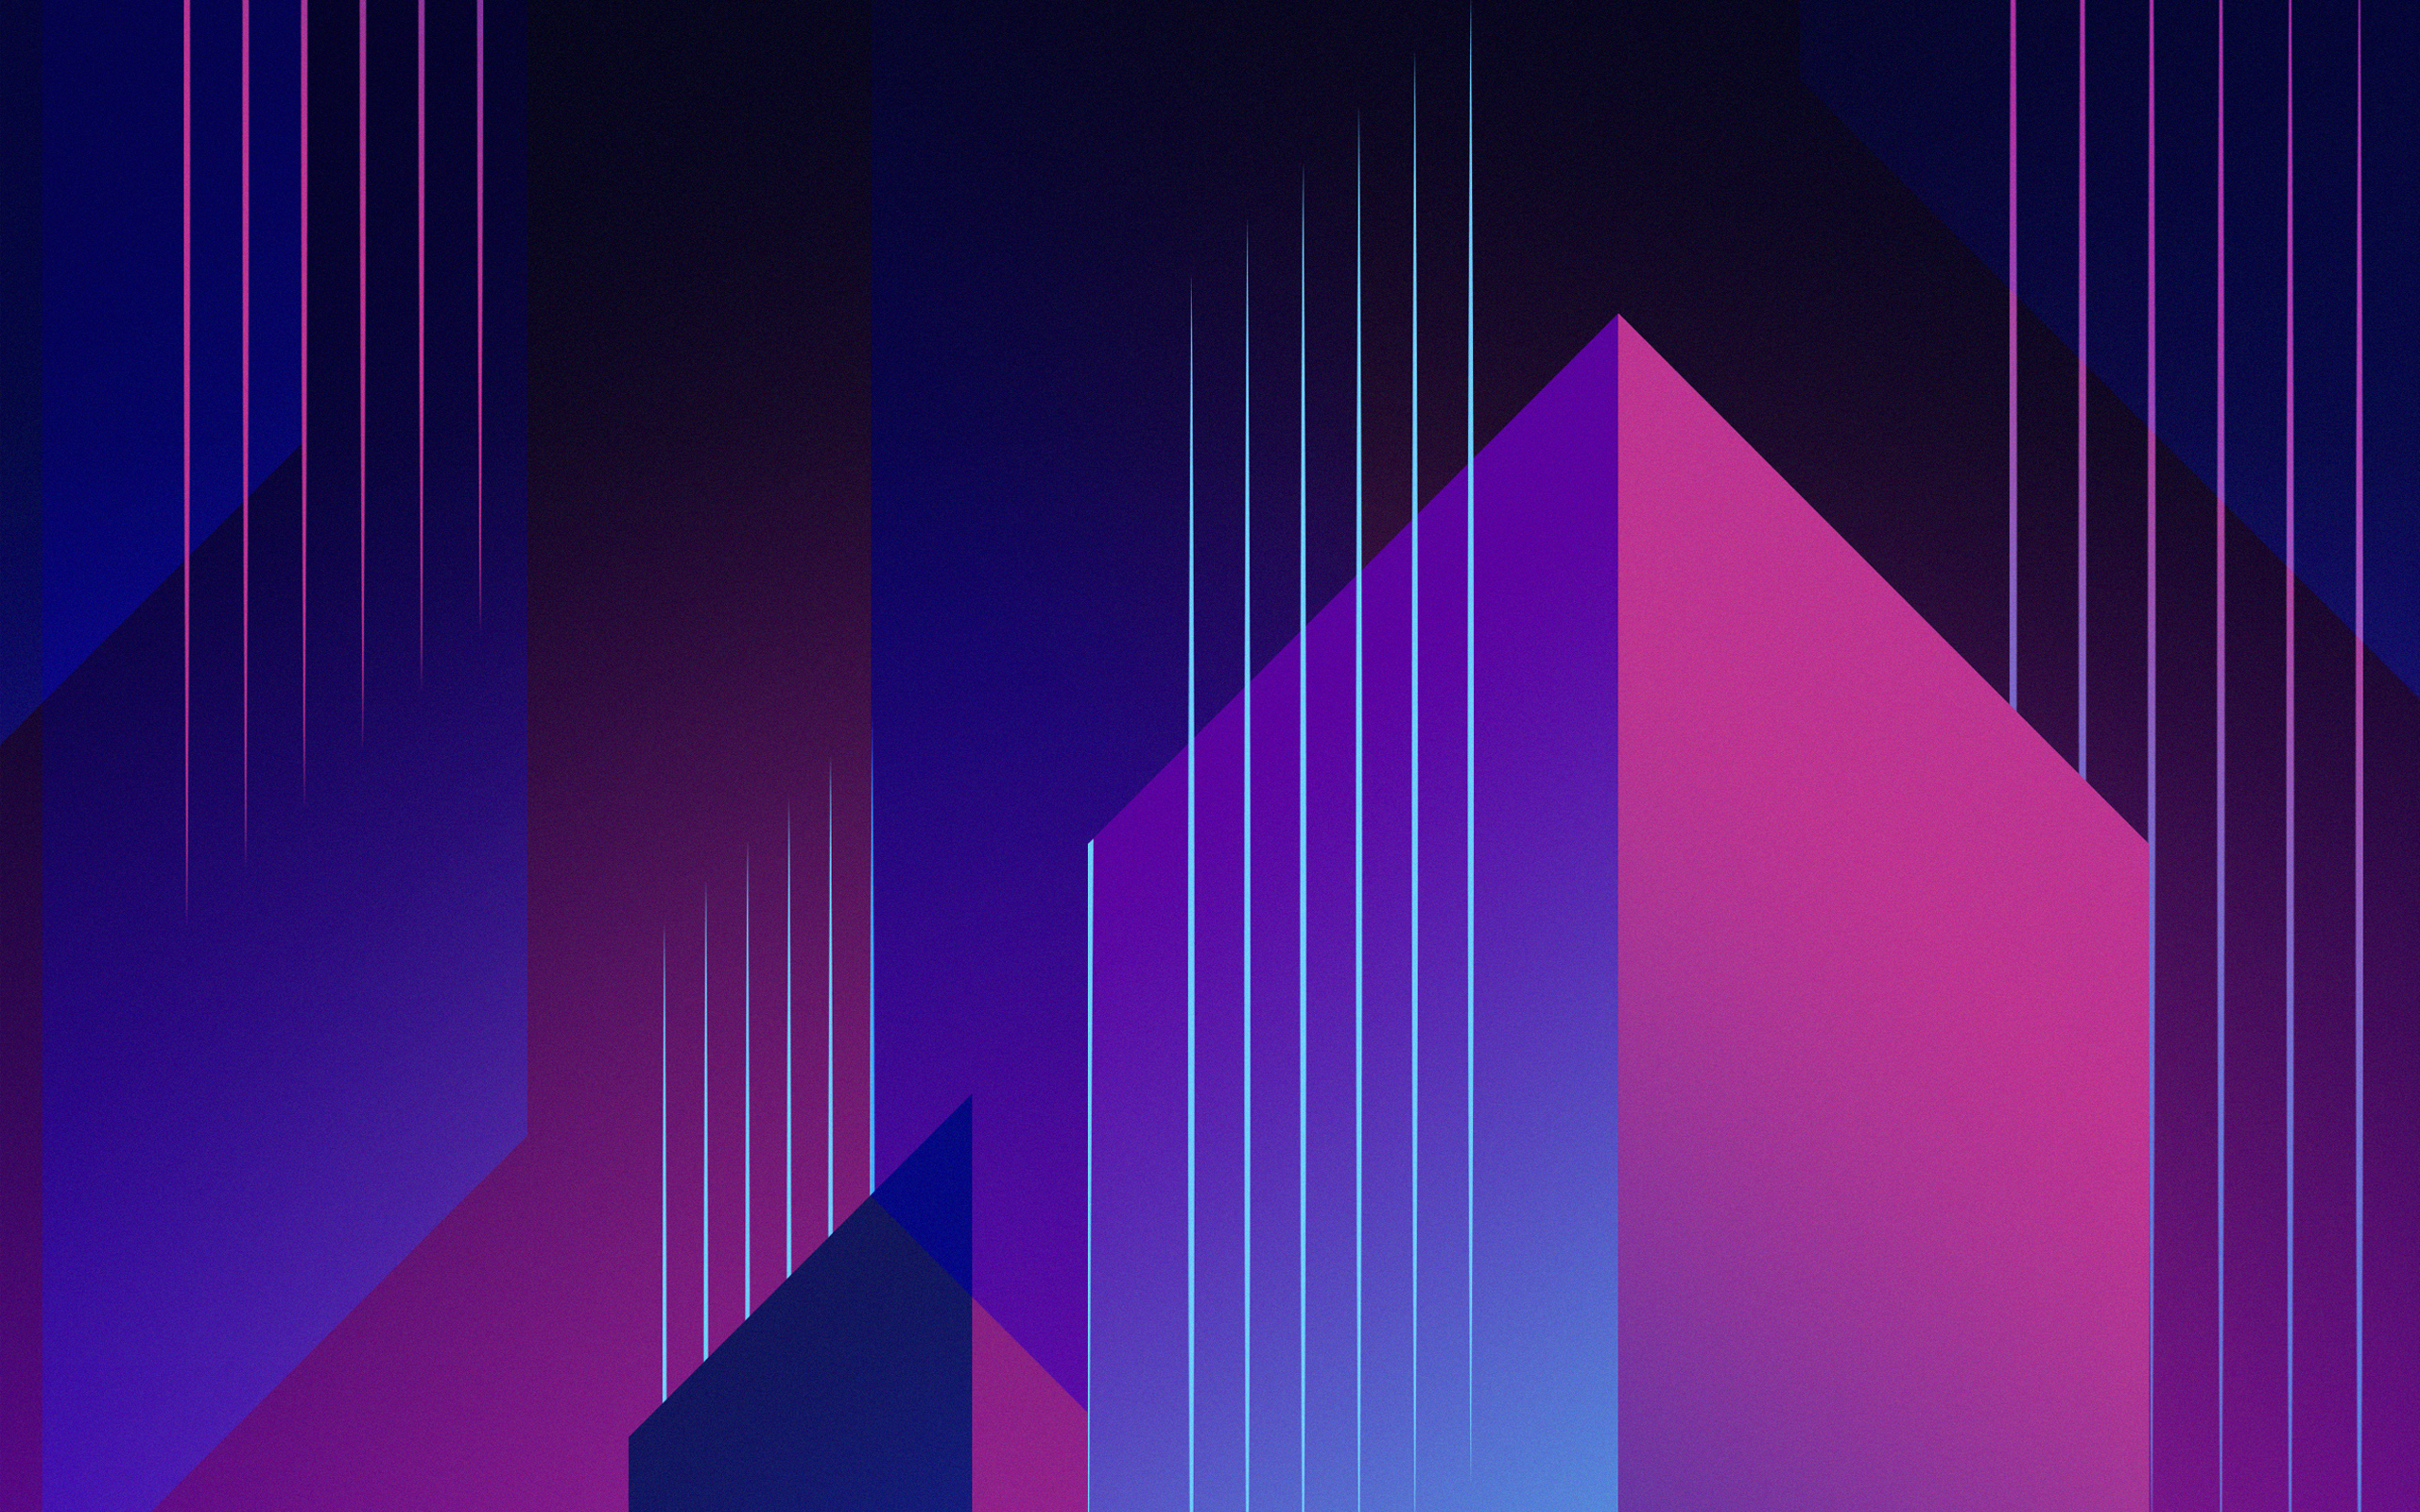 Sharp Lines HTC U11 Plus Stock Wallpapers